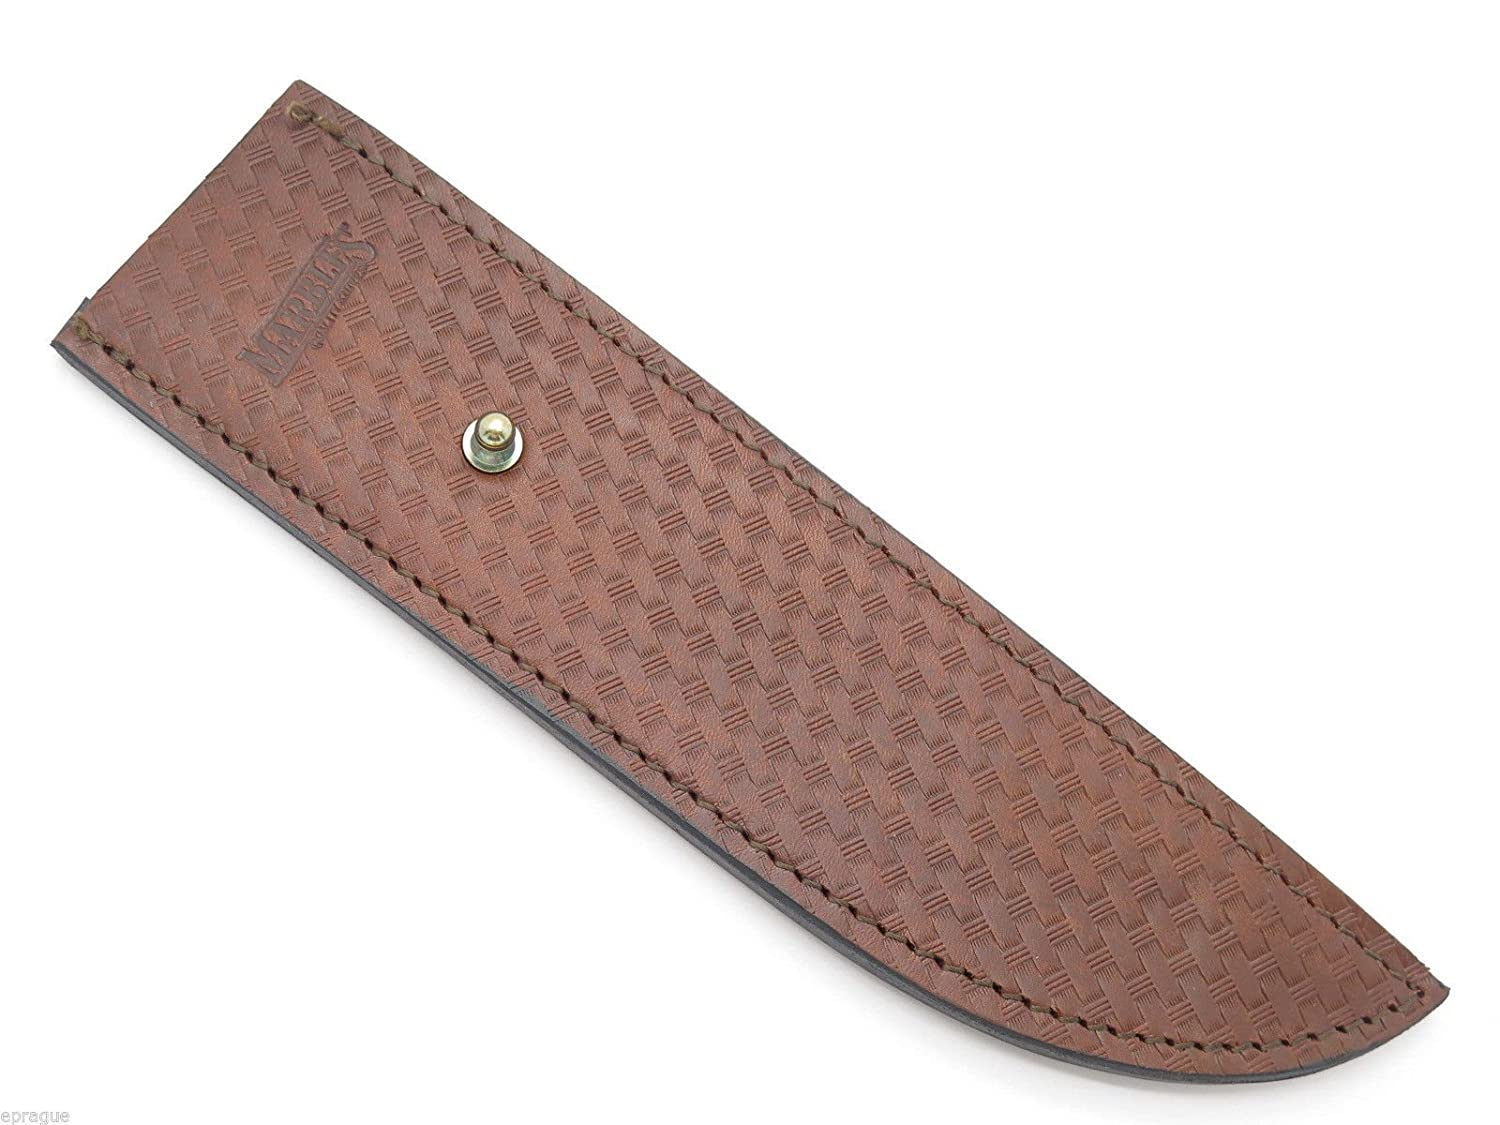 Marbles Vintage Tone Stud Trailmaker Sheath 10 Inch Fixed Blade Bowie Suvival Jungle Knife Brown Leather